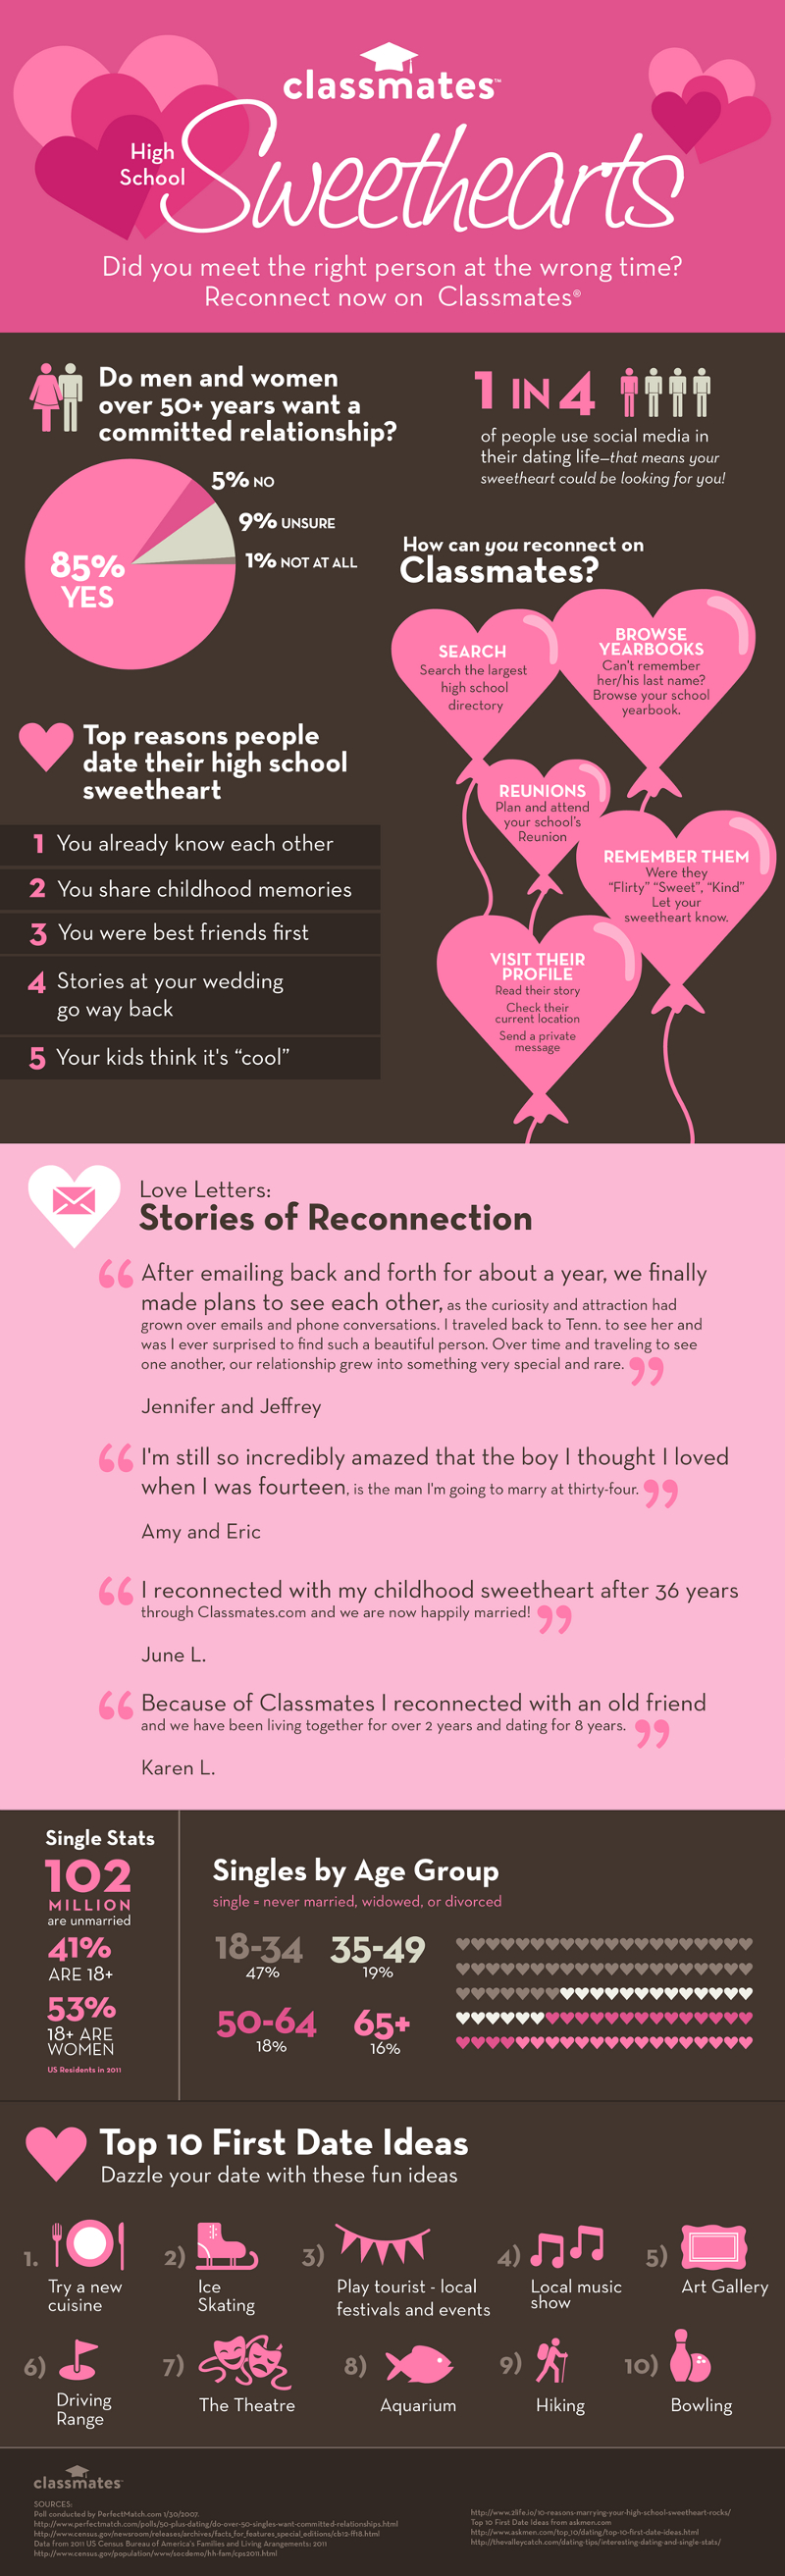 21 High School Sweethearts Marriage Statistics